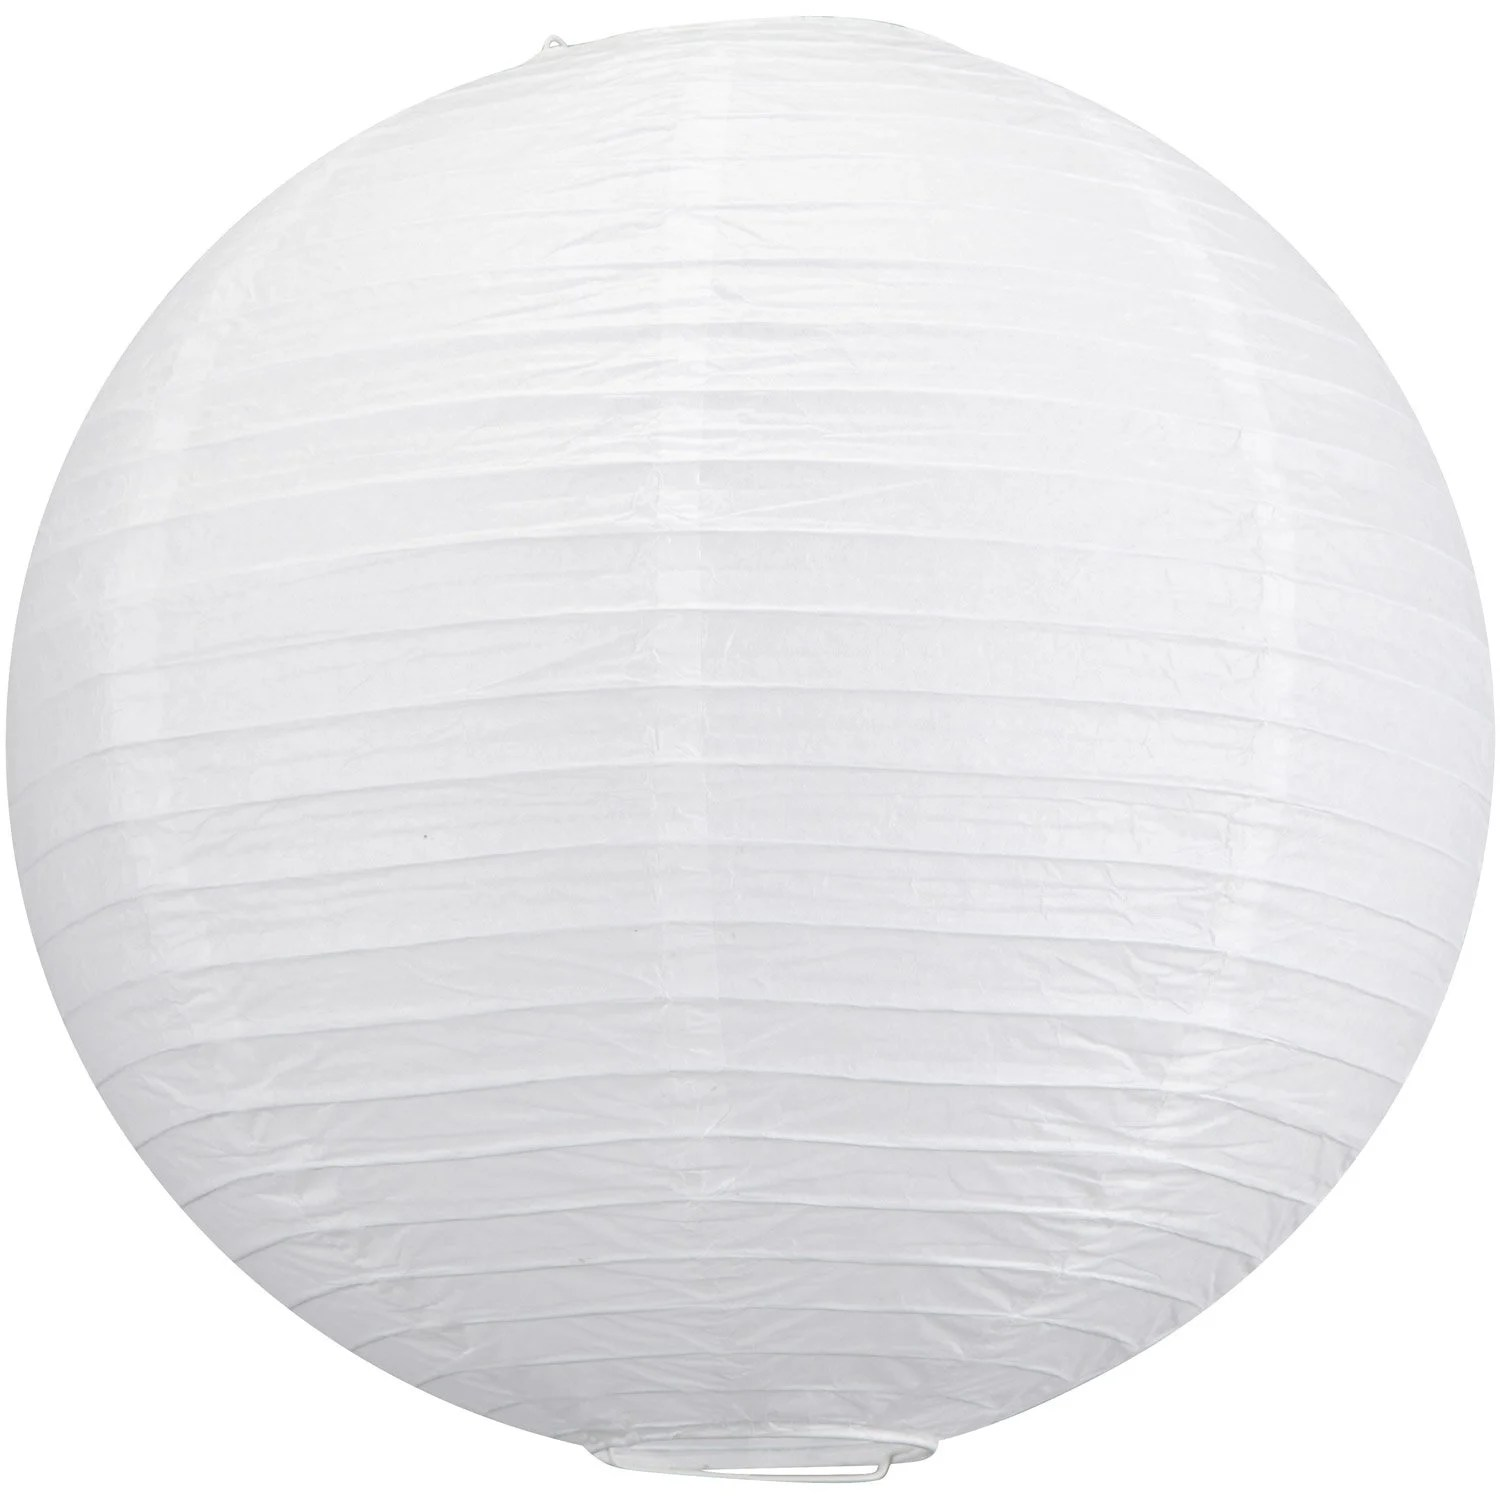 Suspension Luminaire Papier Suspension Sans Cordon Enfant Goa Papier Blanc 1 Inspire